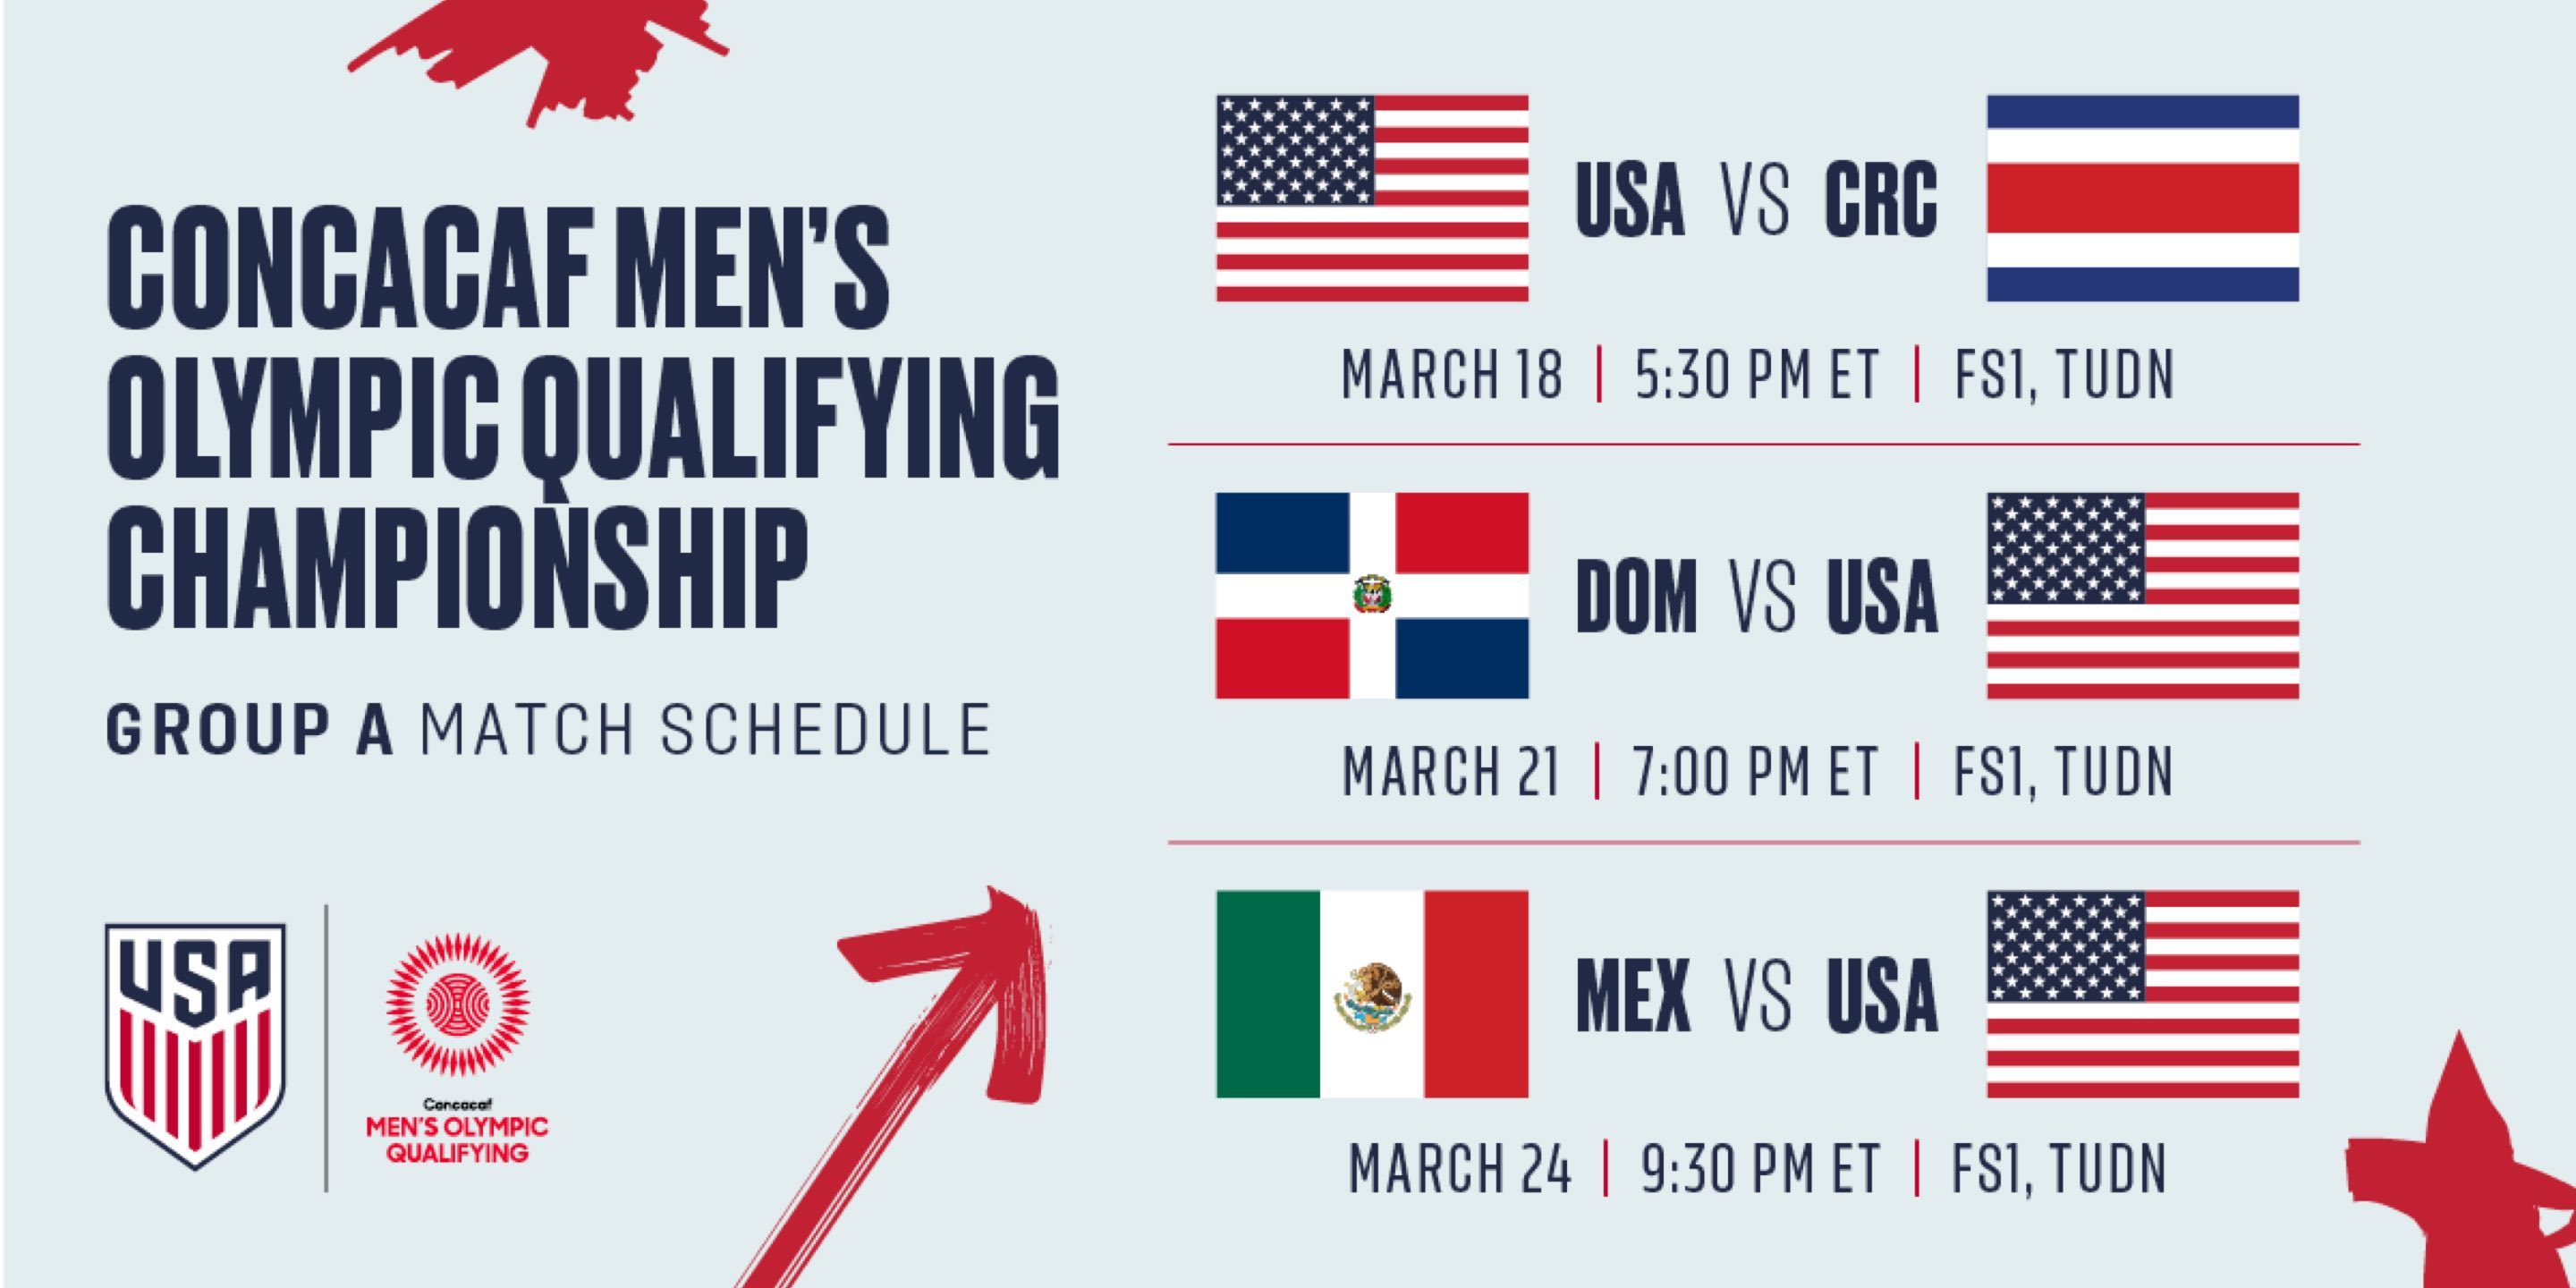 Preview U 23 Usmnt Ready To Embark On Road To Tokyo At Concacaf Men S Olympic Qualifying Championship